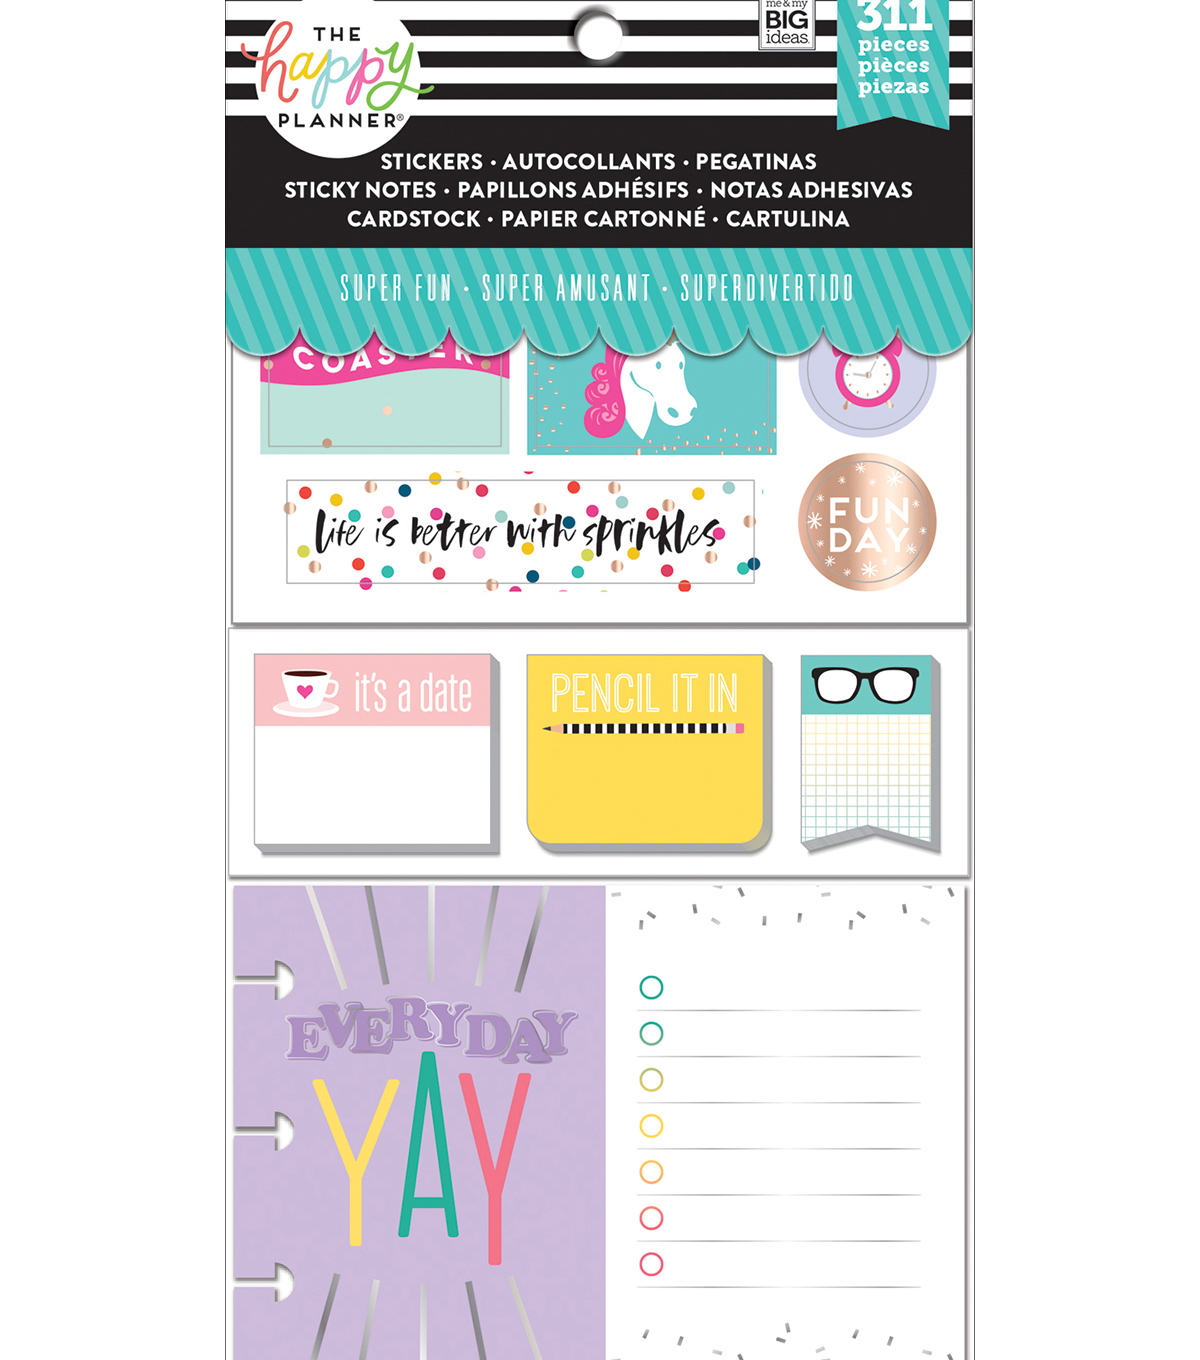 Coordinated Happy Planner Accessories   Super Fun                      Coordinated Happy Planner Accessories   Super Fun by The Happy Planner